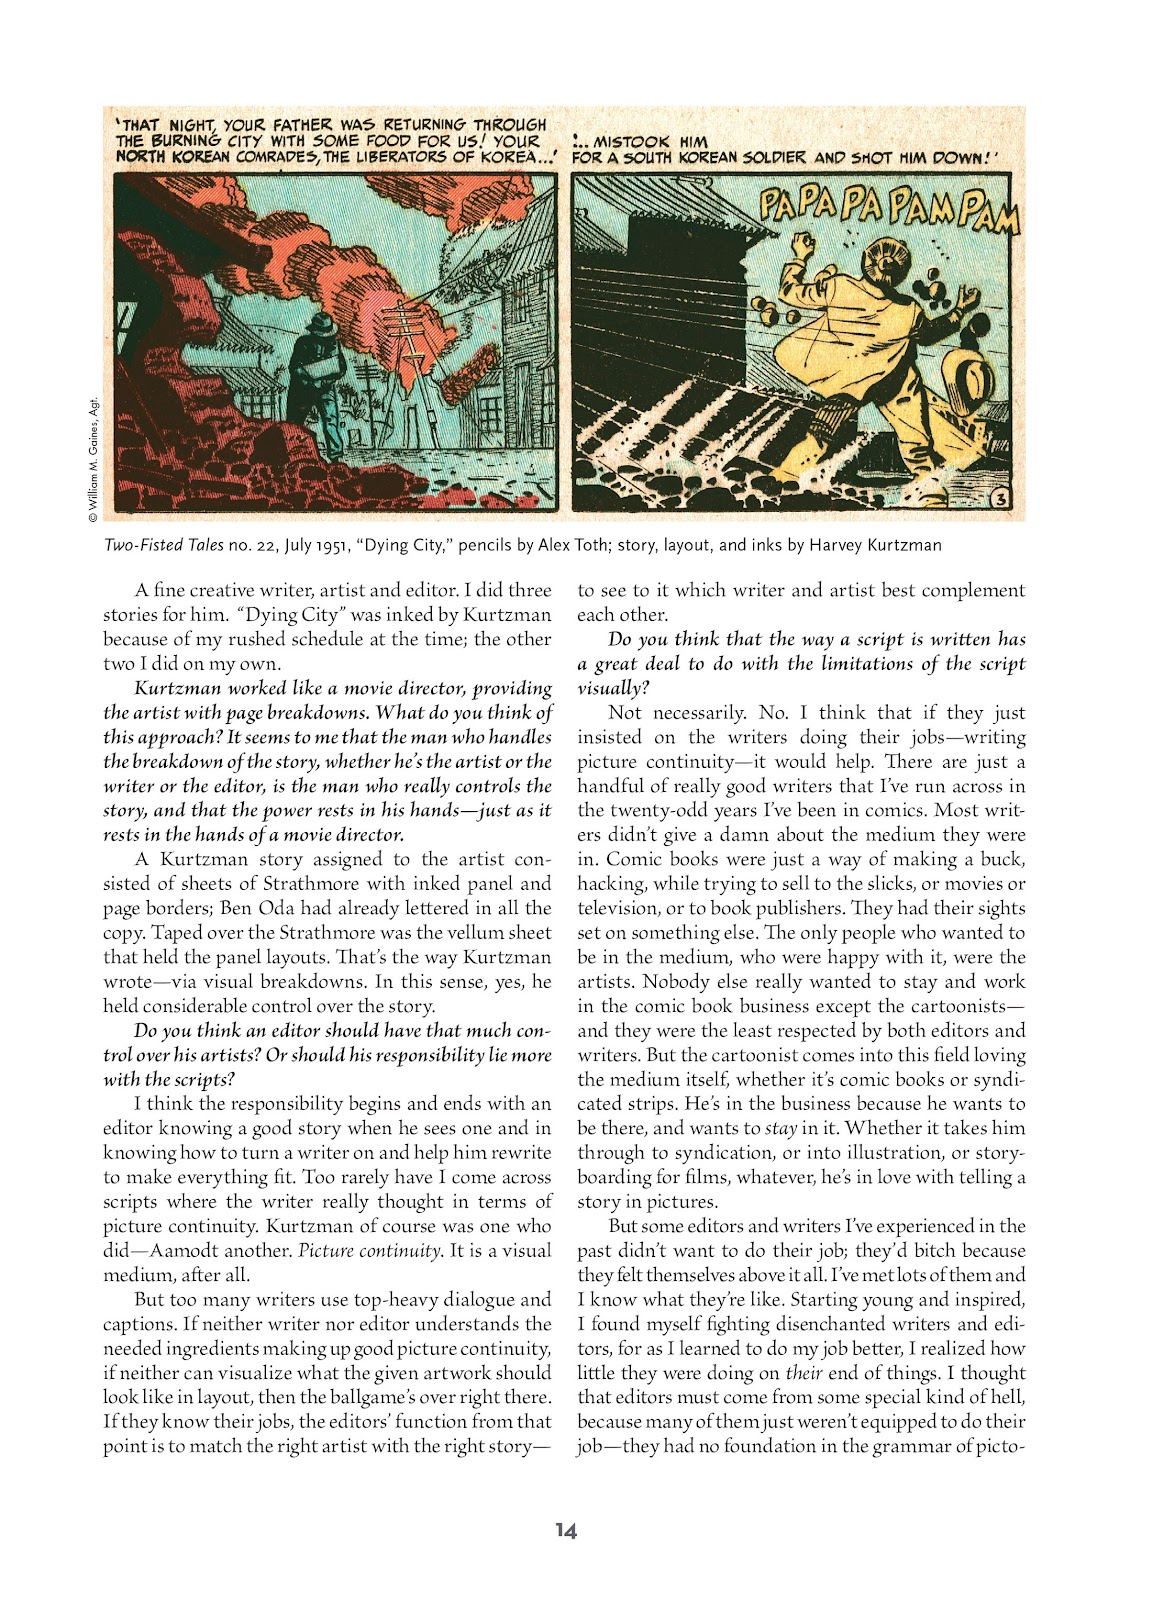 Read online Setting the Standard: Comics by Alex Toth 1952-1954 comic -  Issue # TPB (Part 1) - 13